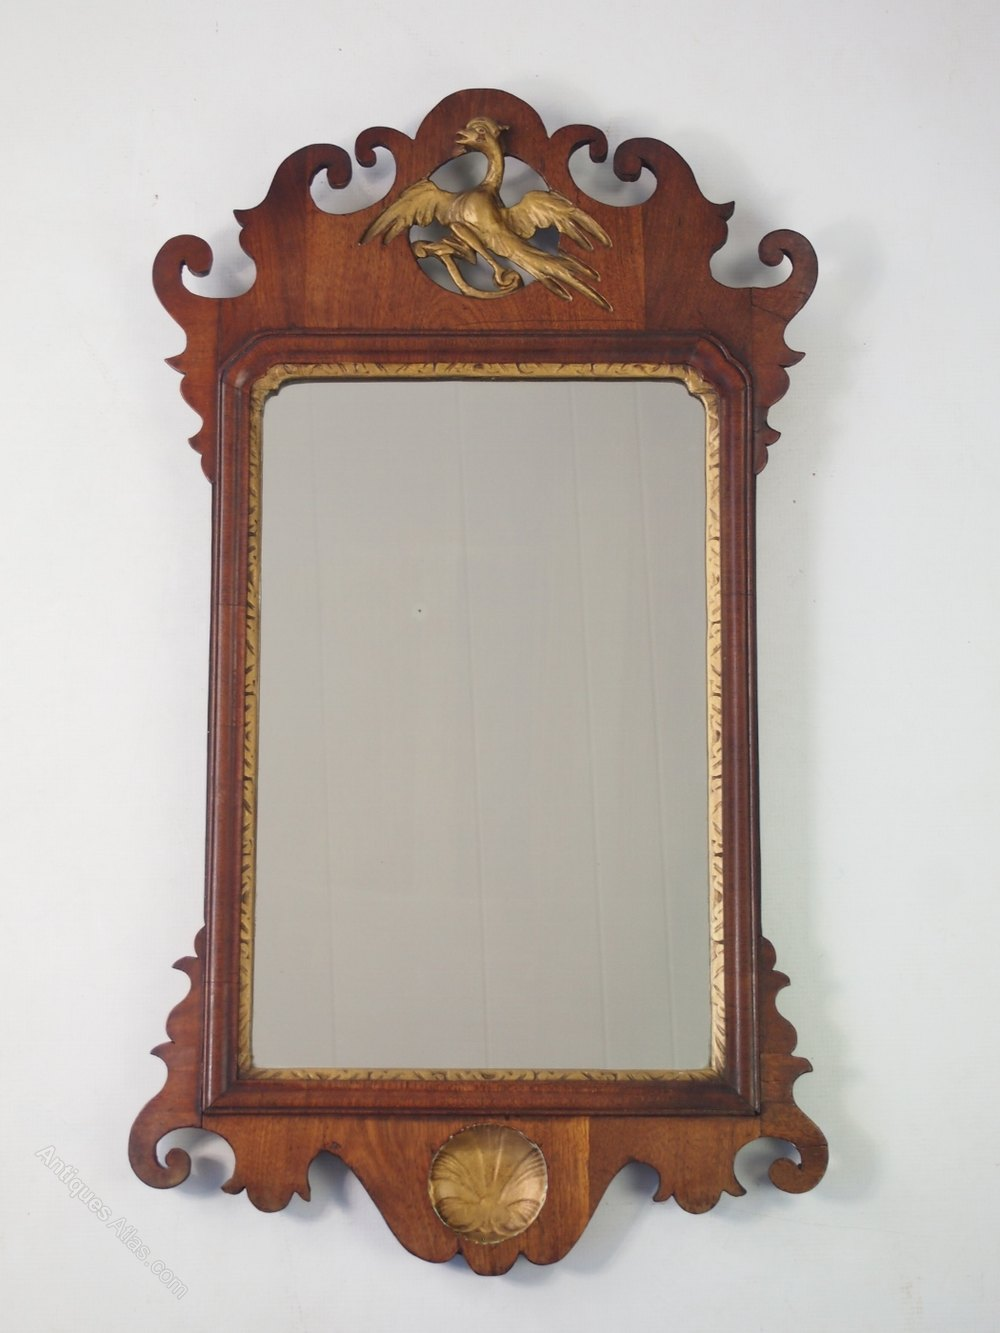 Antiques atlas antique georgian fretwork wall mirror for Antique wall mirrors